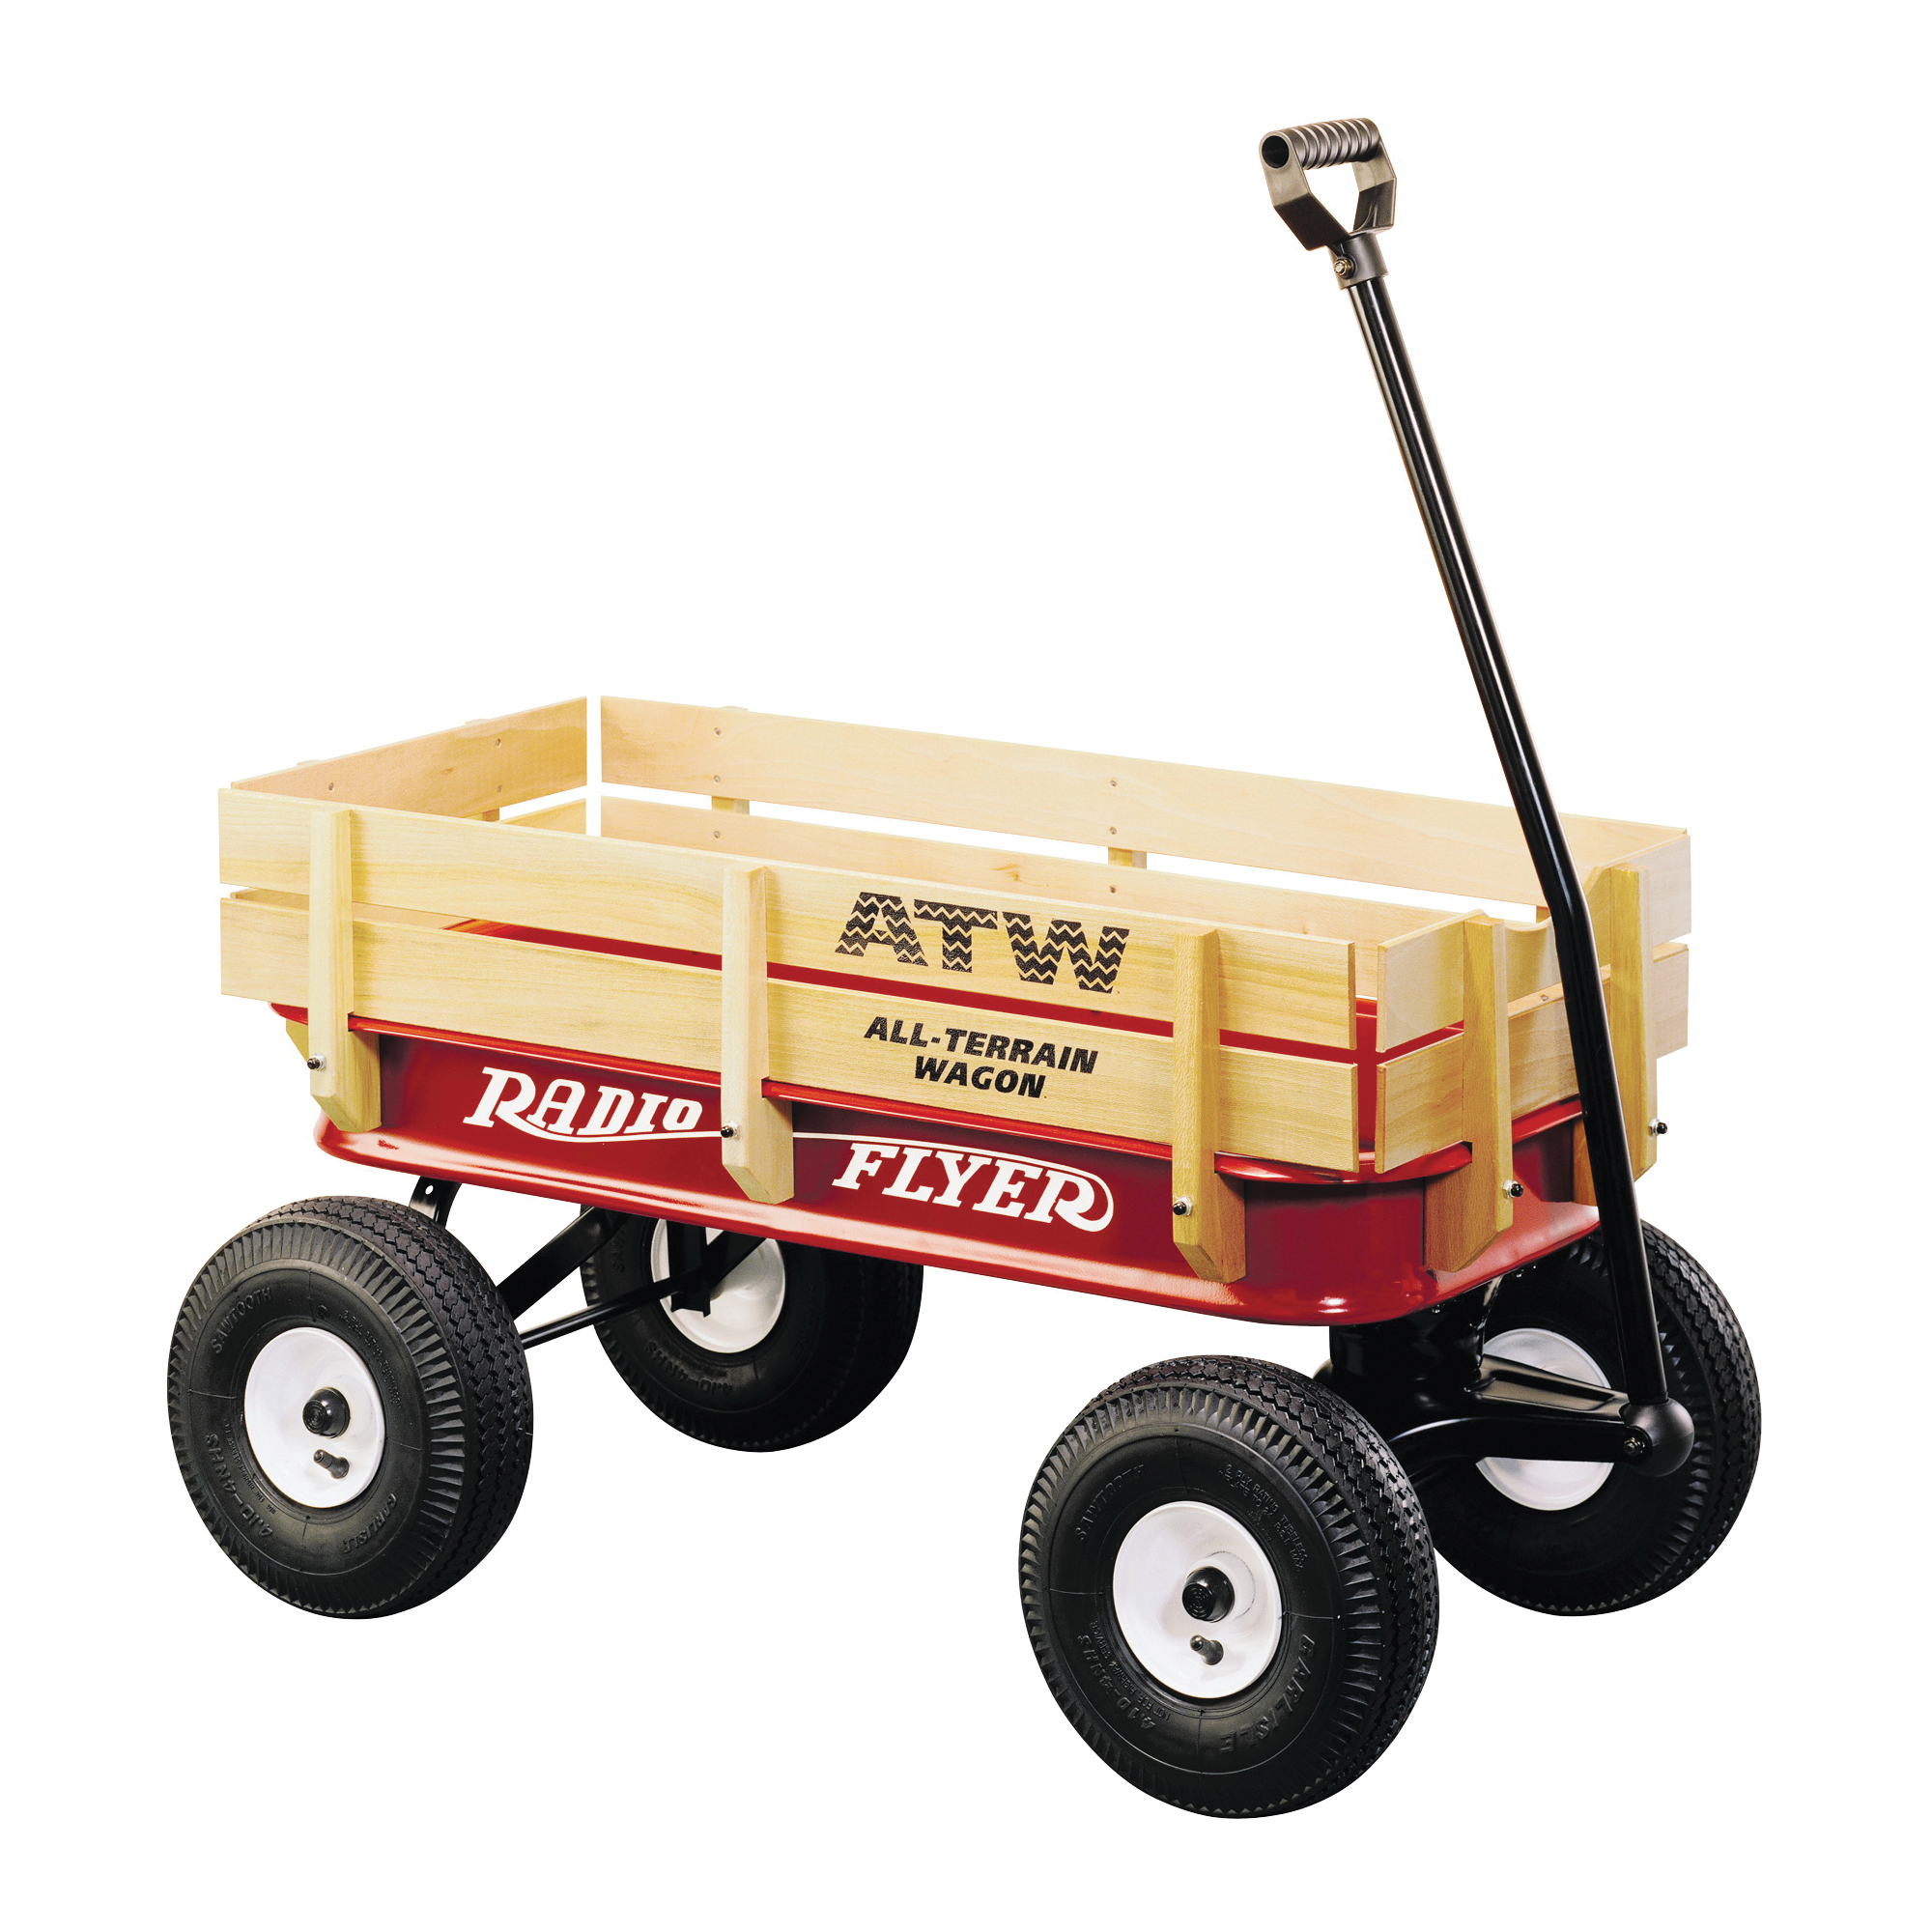 Picture of RADIO FLYER 32Z Terrain Wagon, 200 lb Capacity, Steel/Wood, Red, Pneumatic Wheel